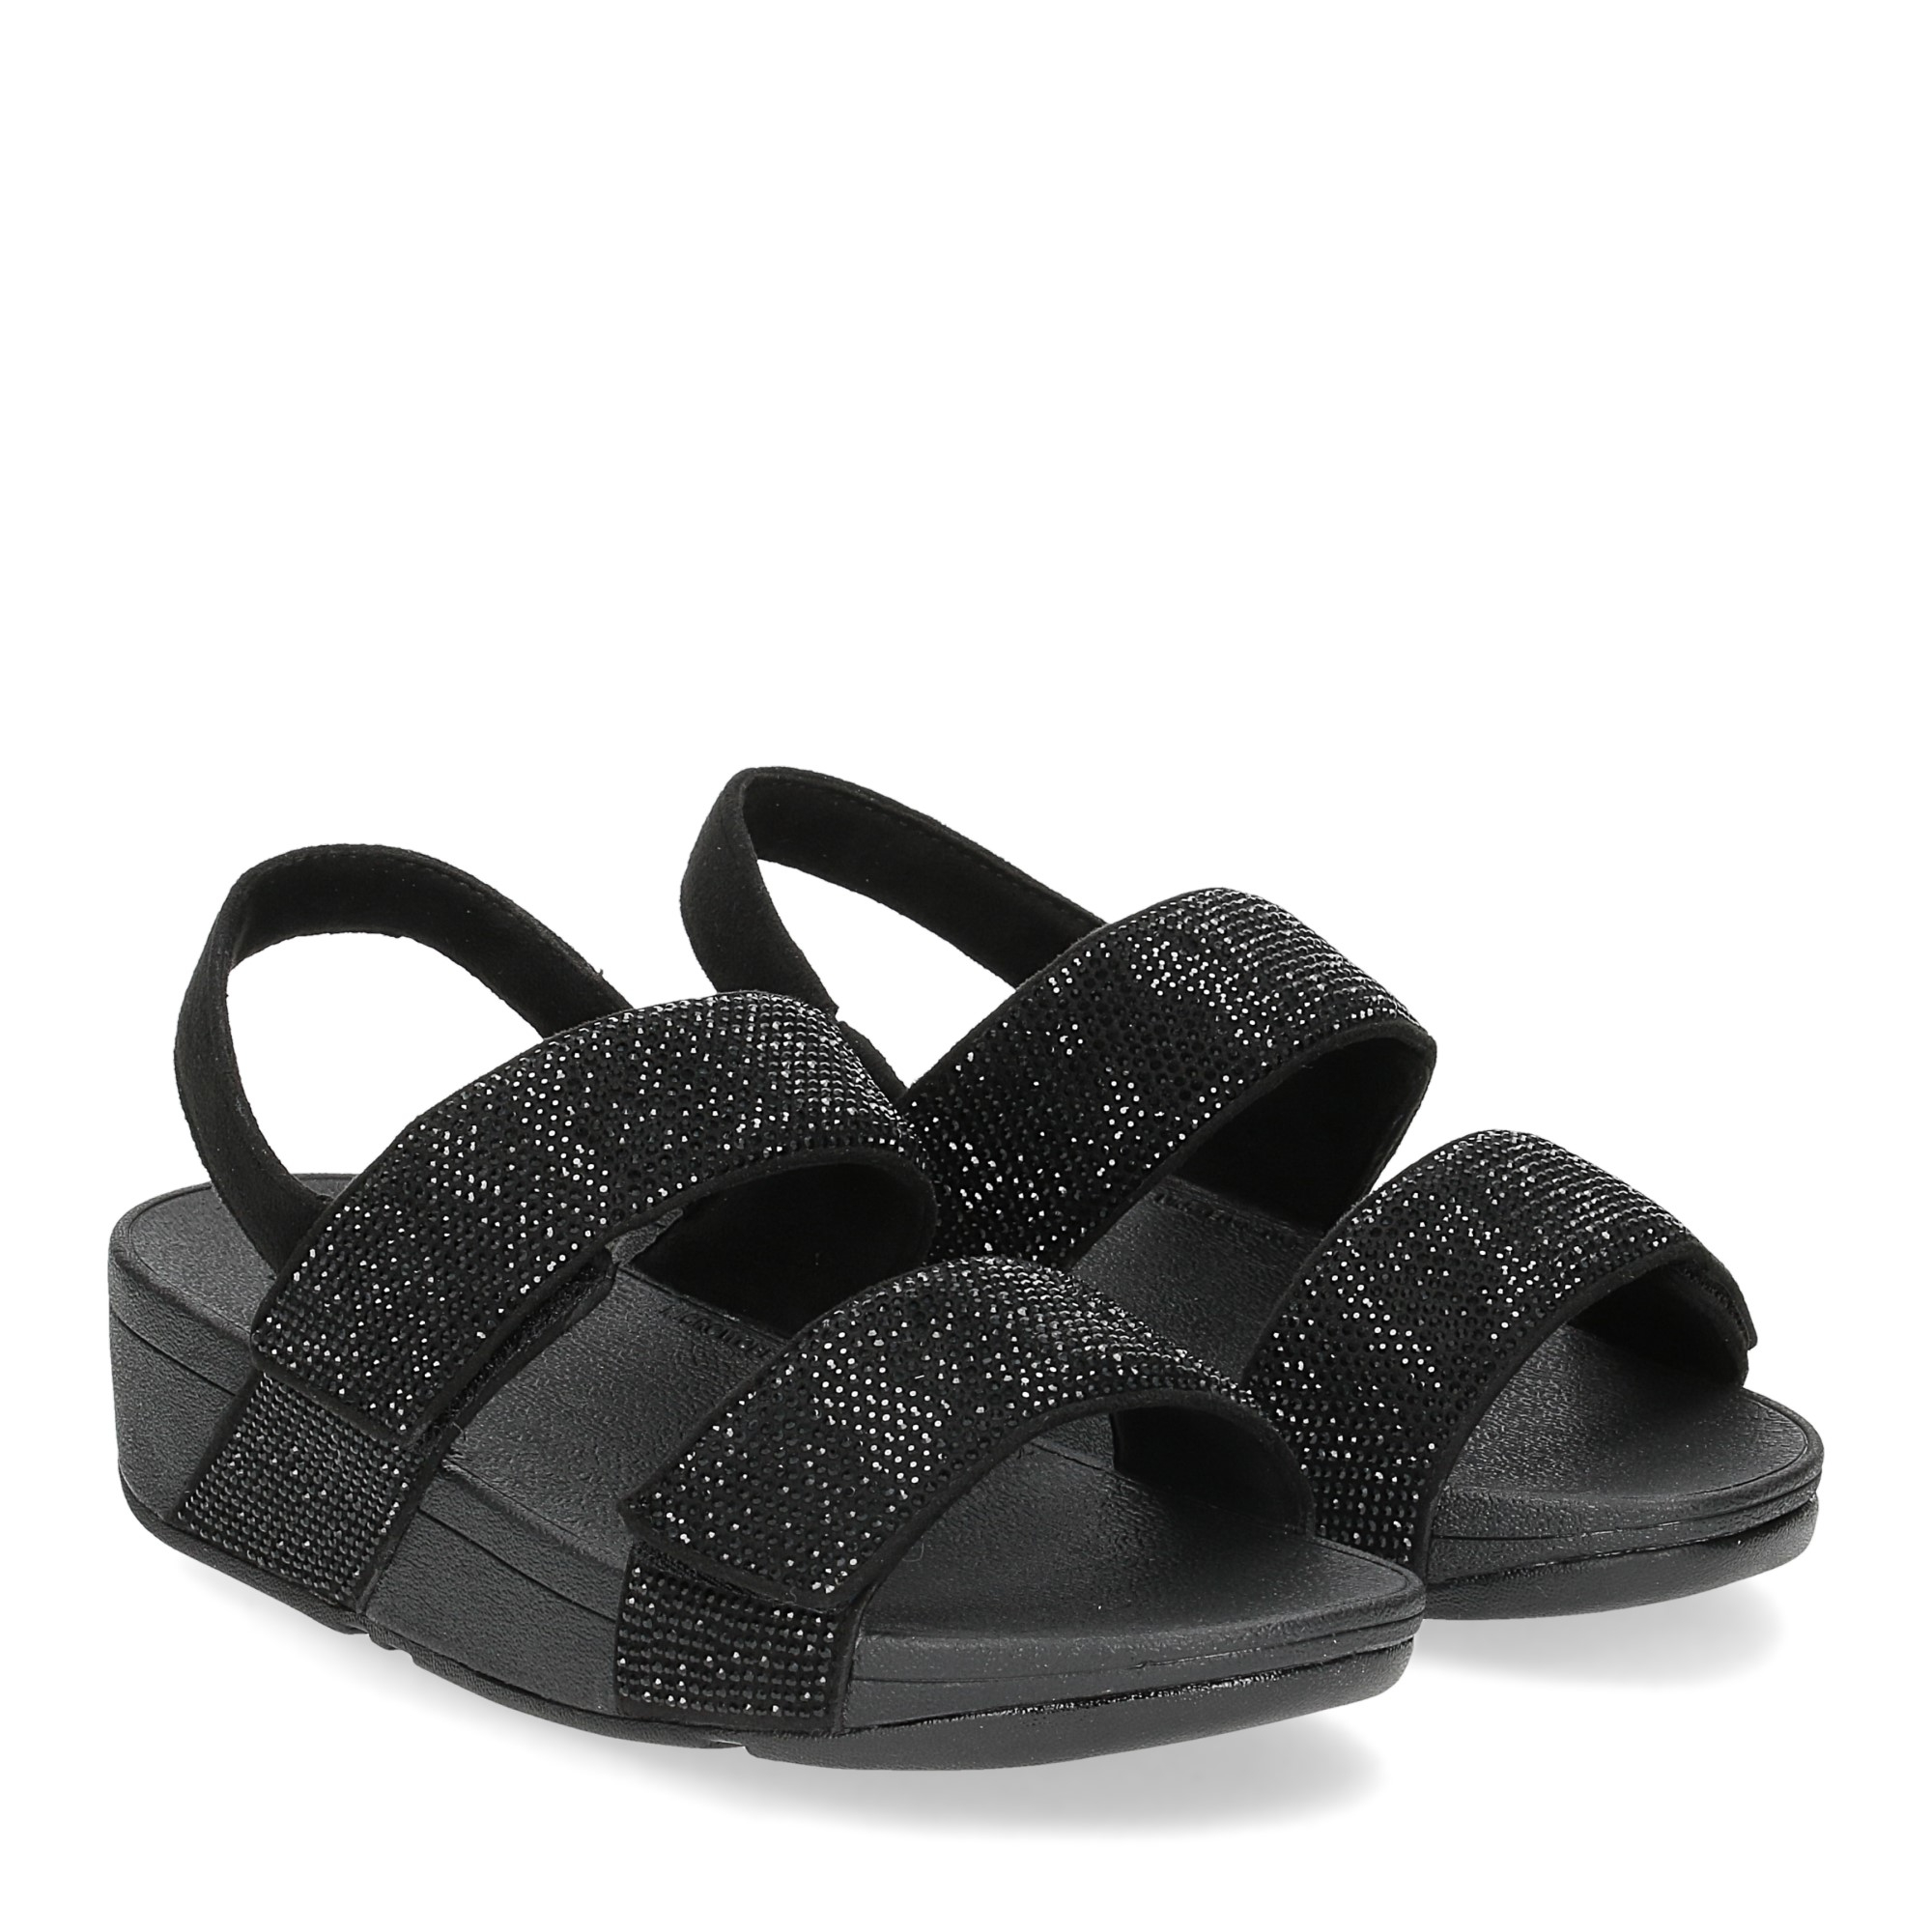 Fitflop Mina Crystal back strap sandals all black